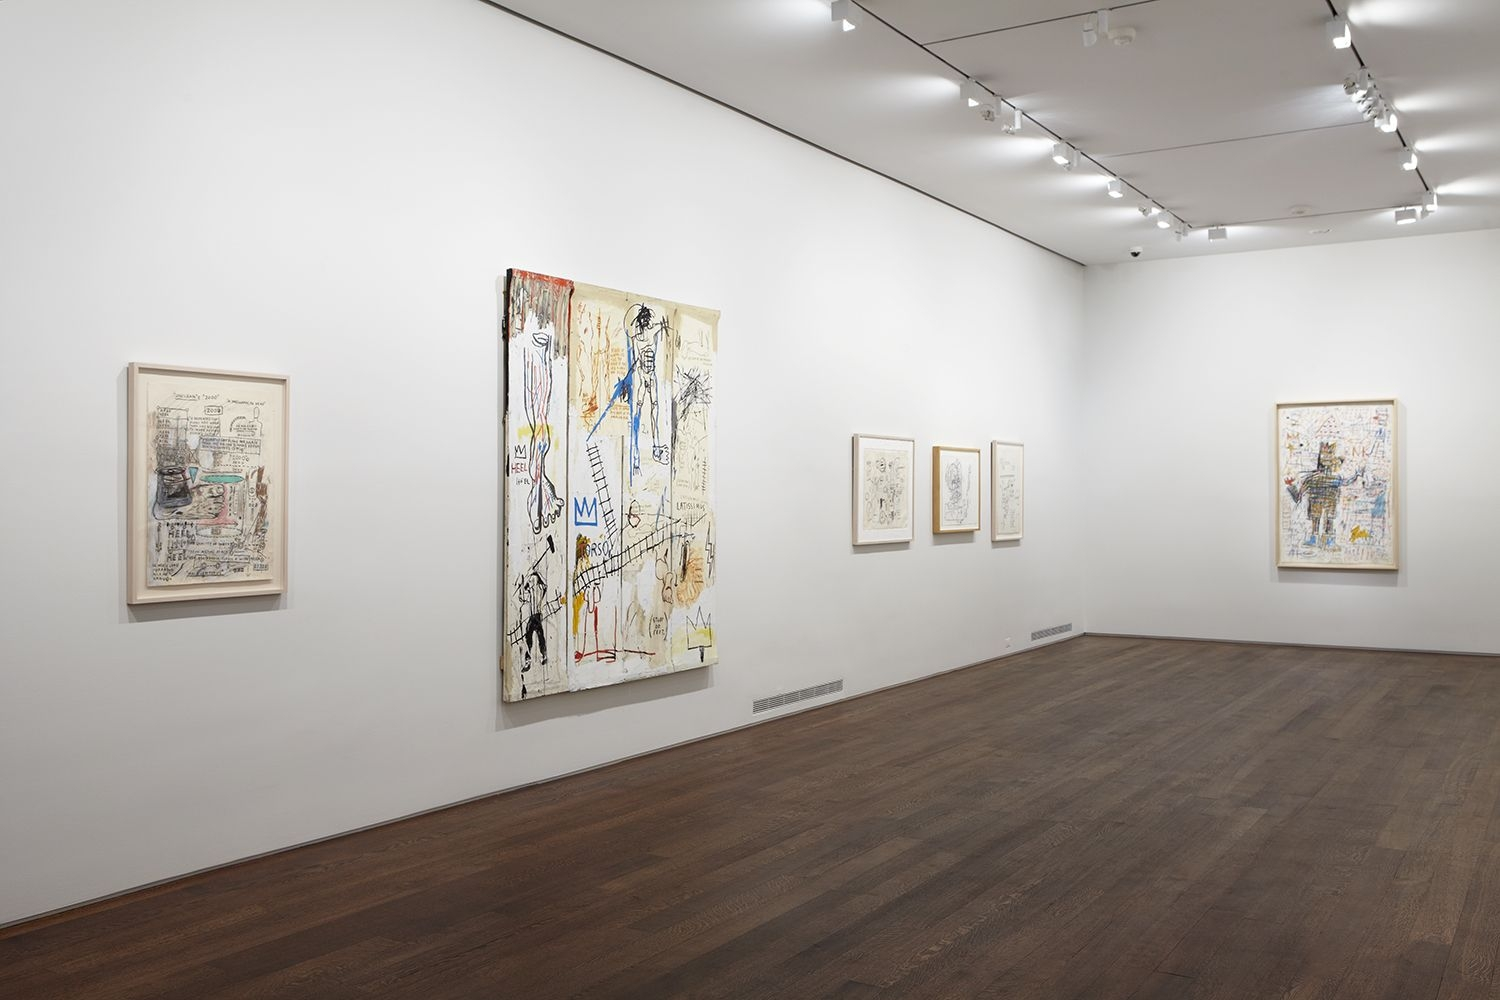 Installation view of Jean-Michel Basquiat Drawing: Work from the Schorr Family Collection, April 30 - June 12, 2014.  © Estate of Jean-Michel Basquiat. Licensed by Artestar, New York.